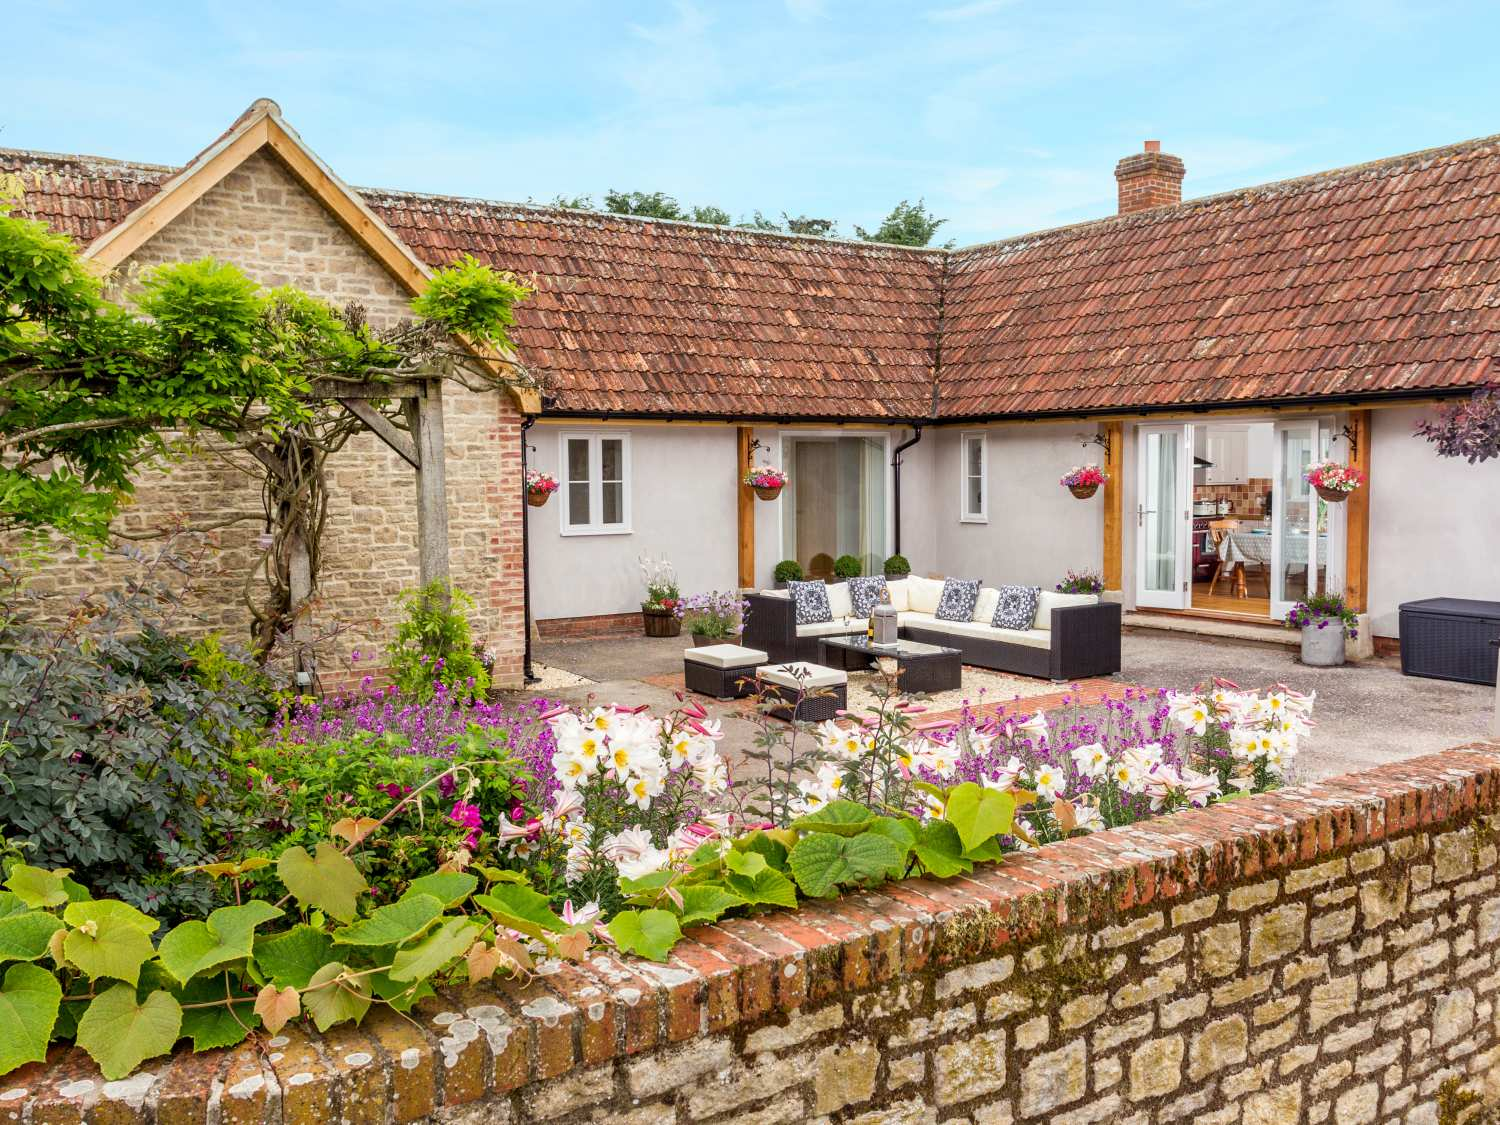 The Farm House Holiday Cottage Upper Seagry6